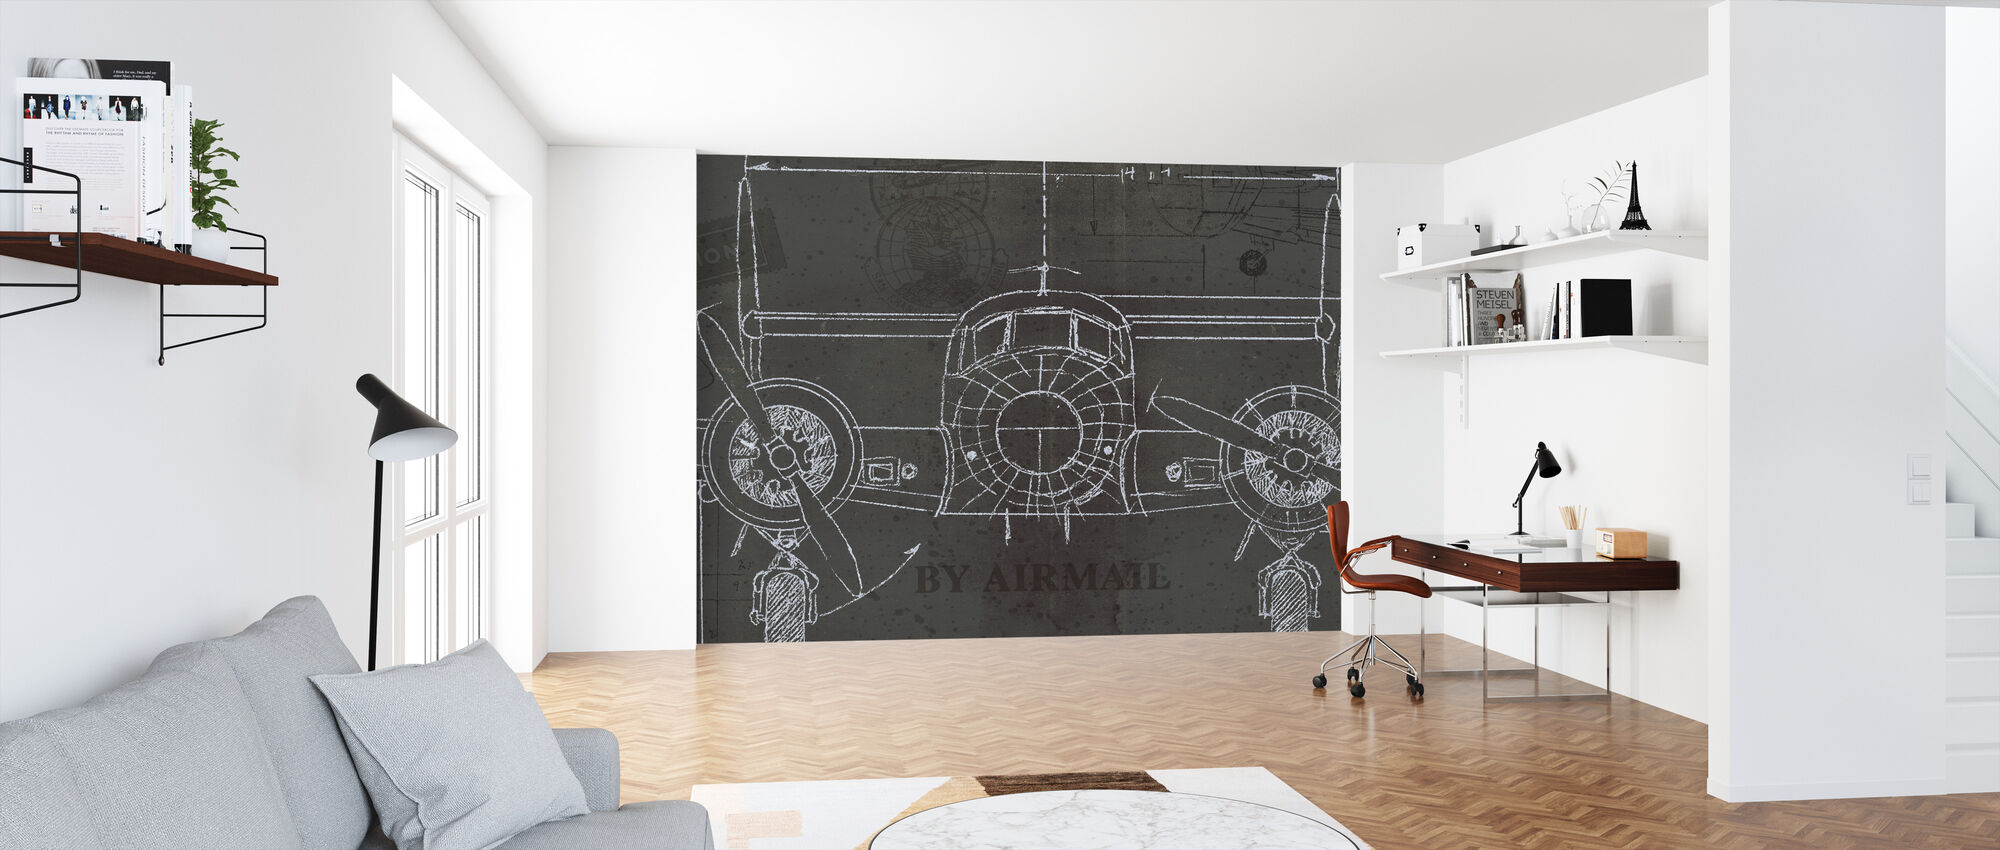 Plane Blueprint 4 - Wallpaper - Office